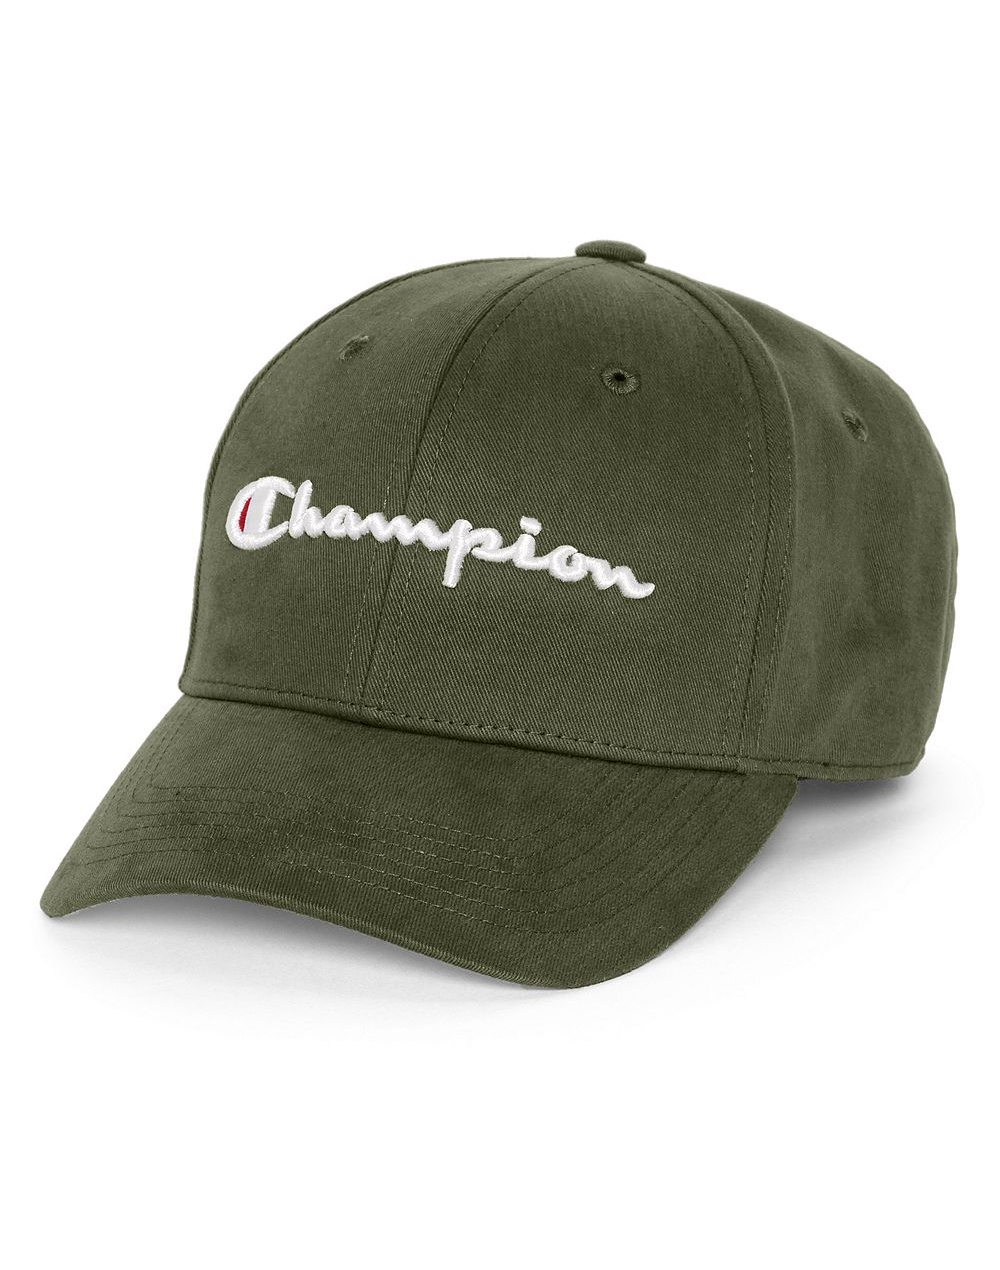 4070648a74484 ... spain champion life twill hat 8fba5 568a4